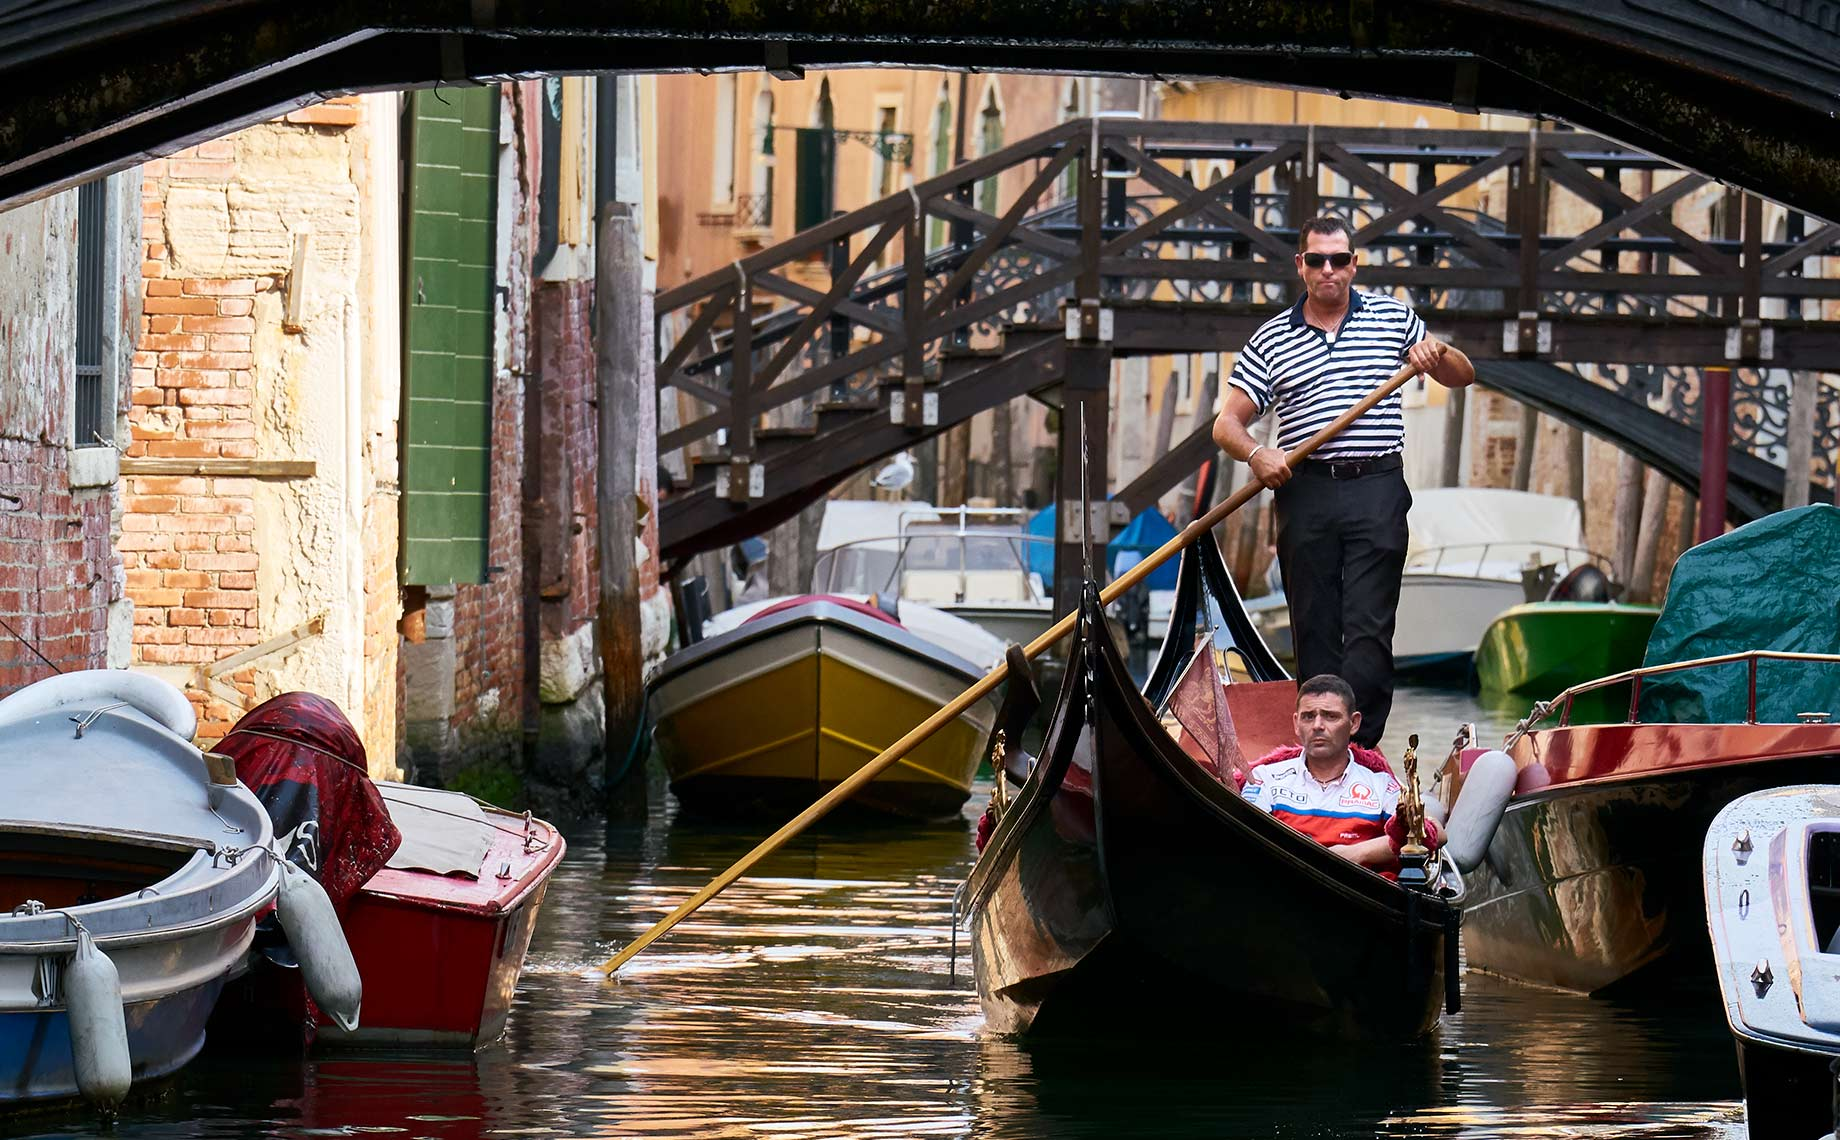 Greg-Anthony-Photographer-Gondola-Venice-DSC8242